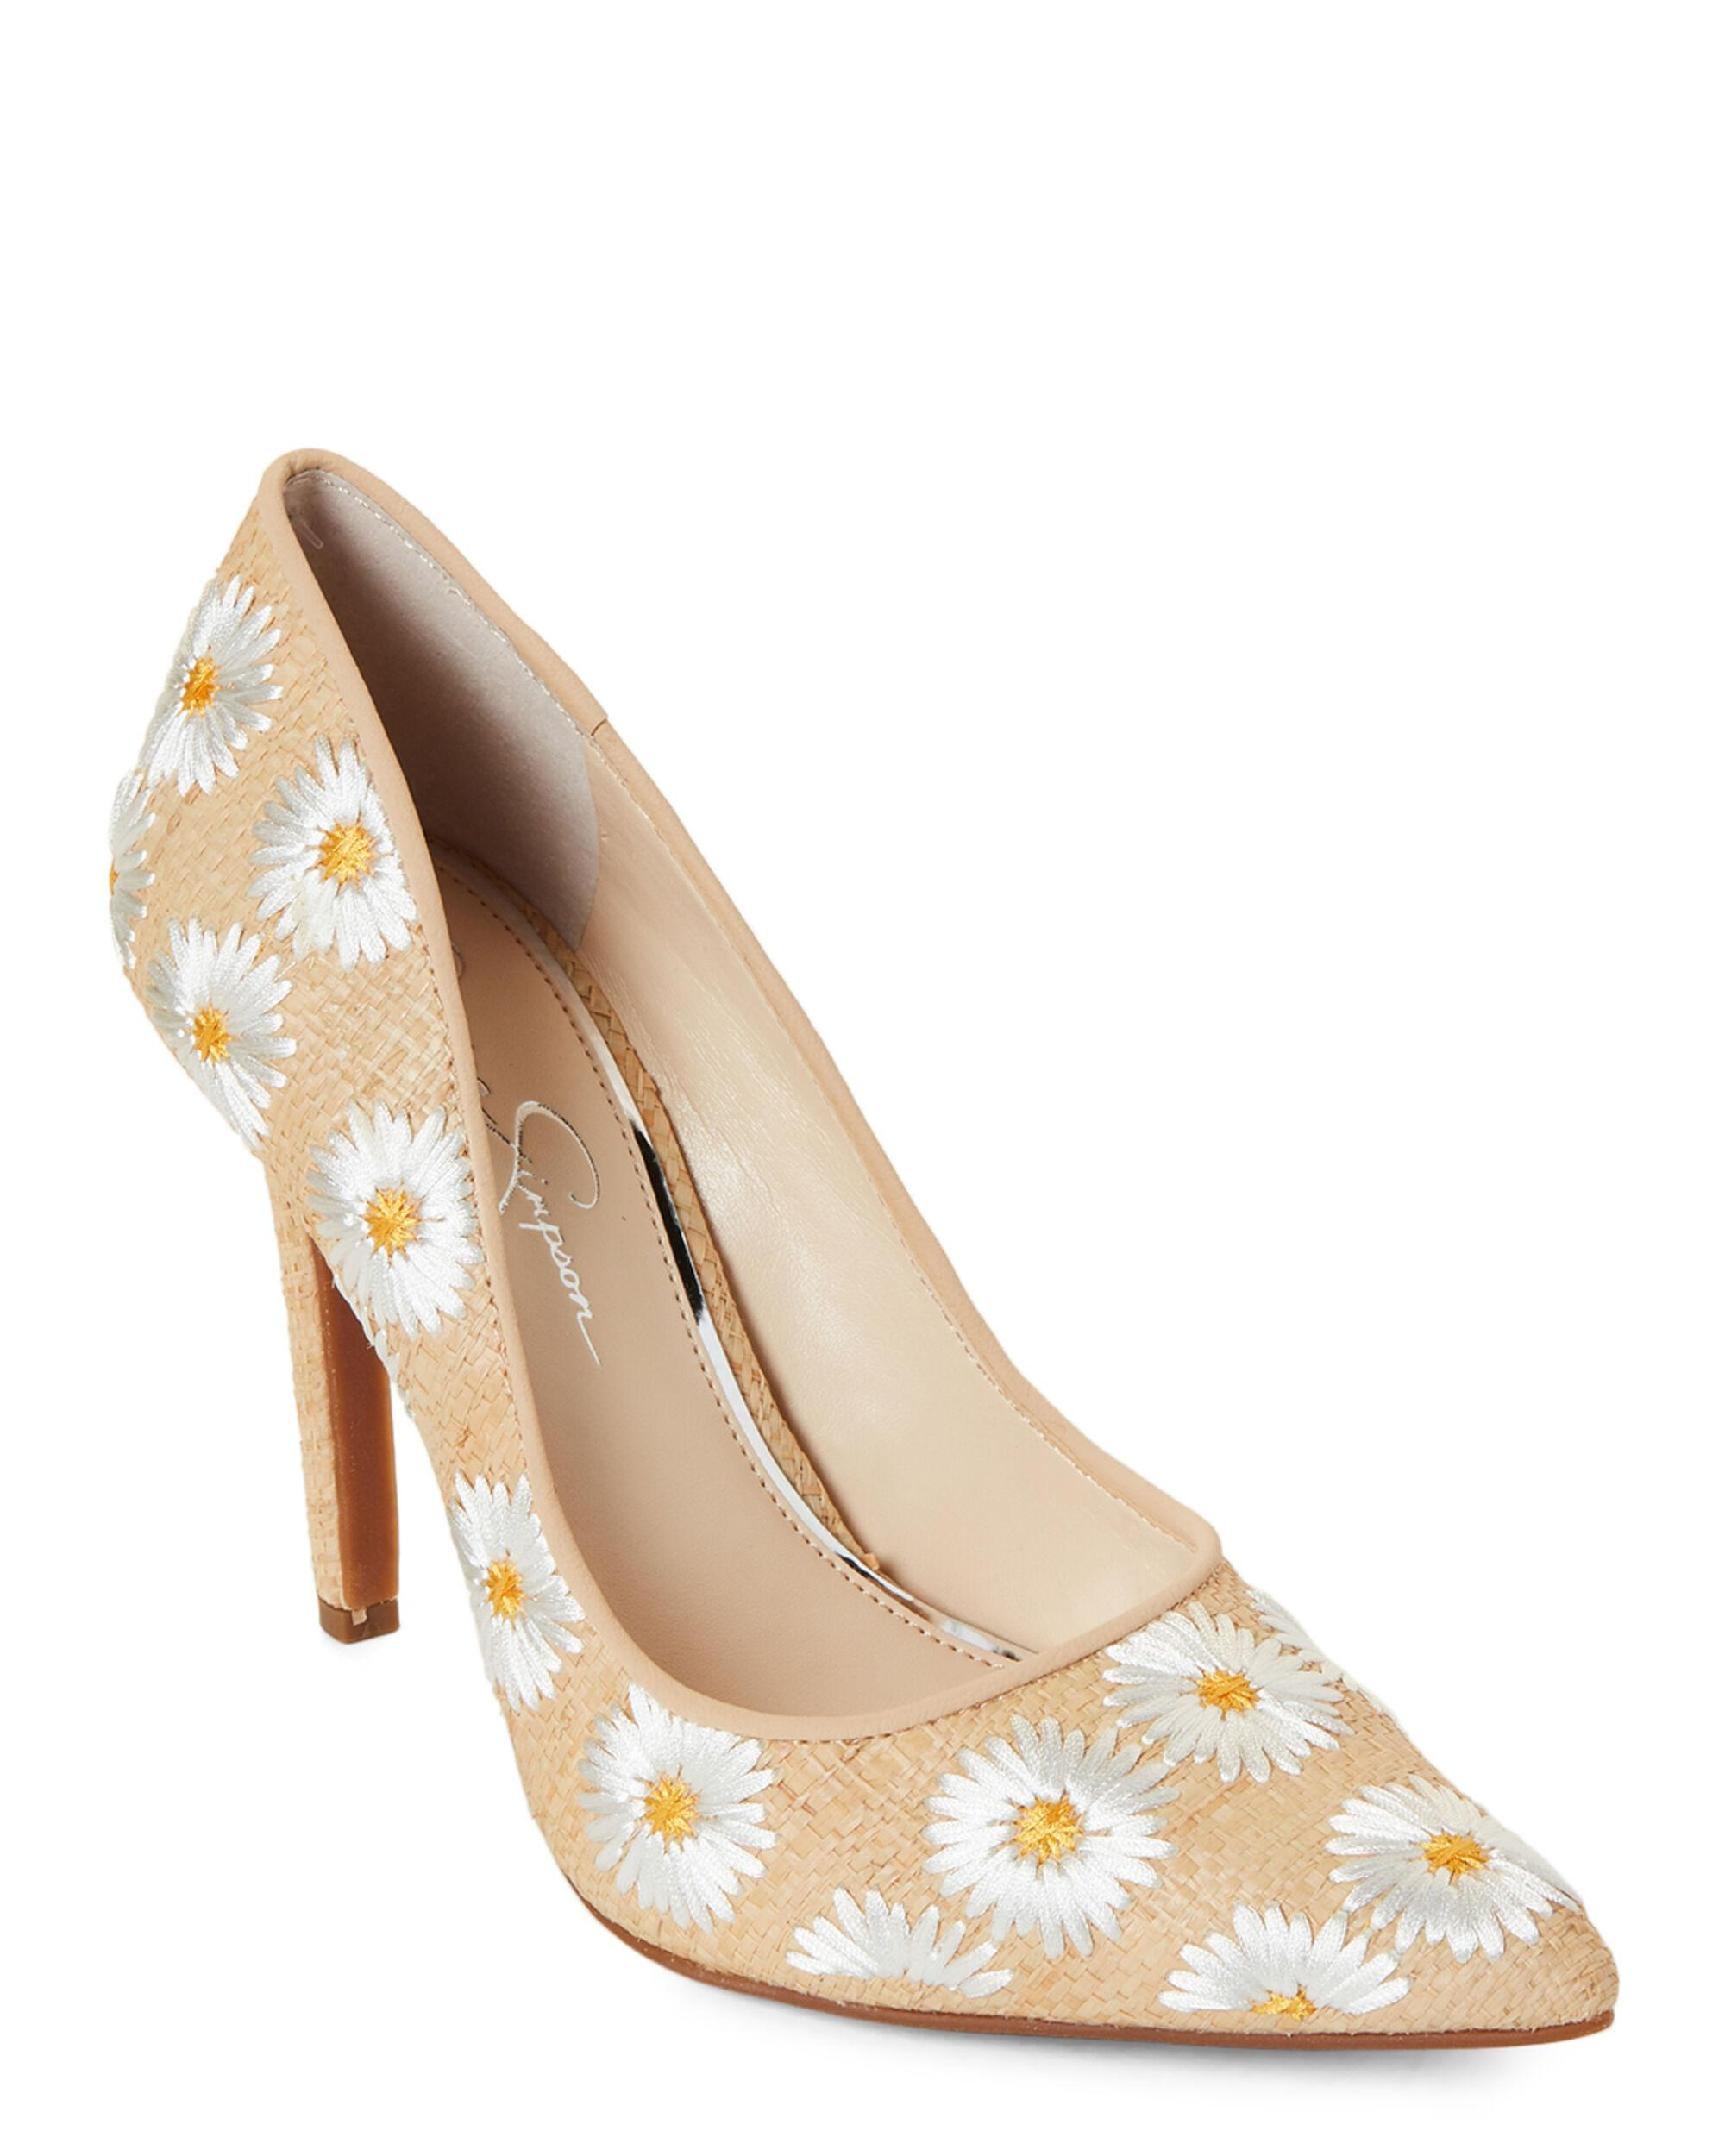 Details about Jessica Simpson Cassani Yellow Shock Patent Pointy High Heel Pumps